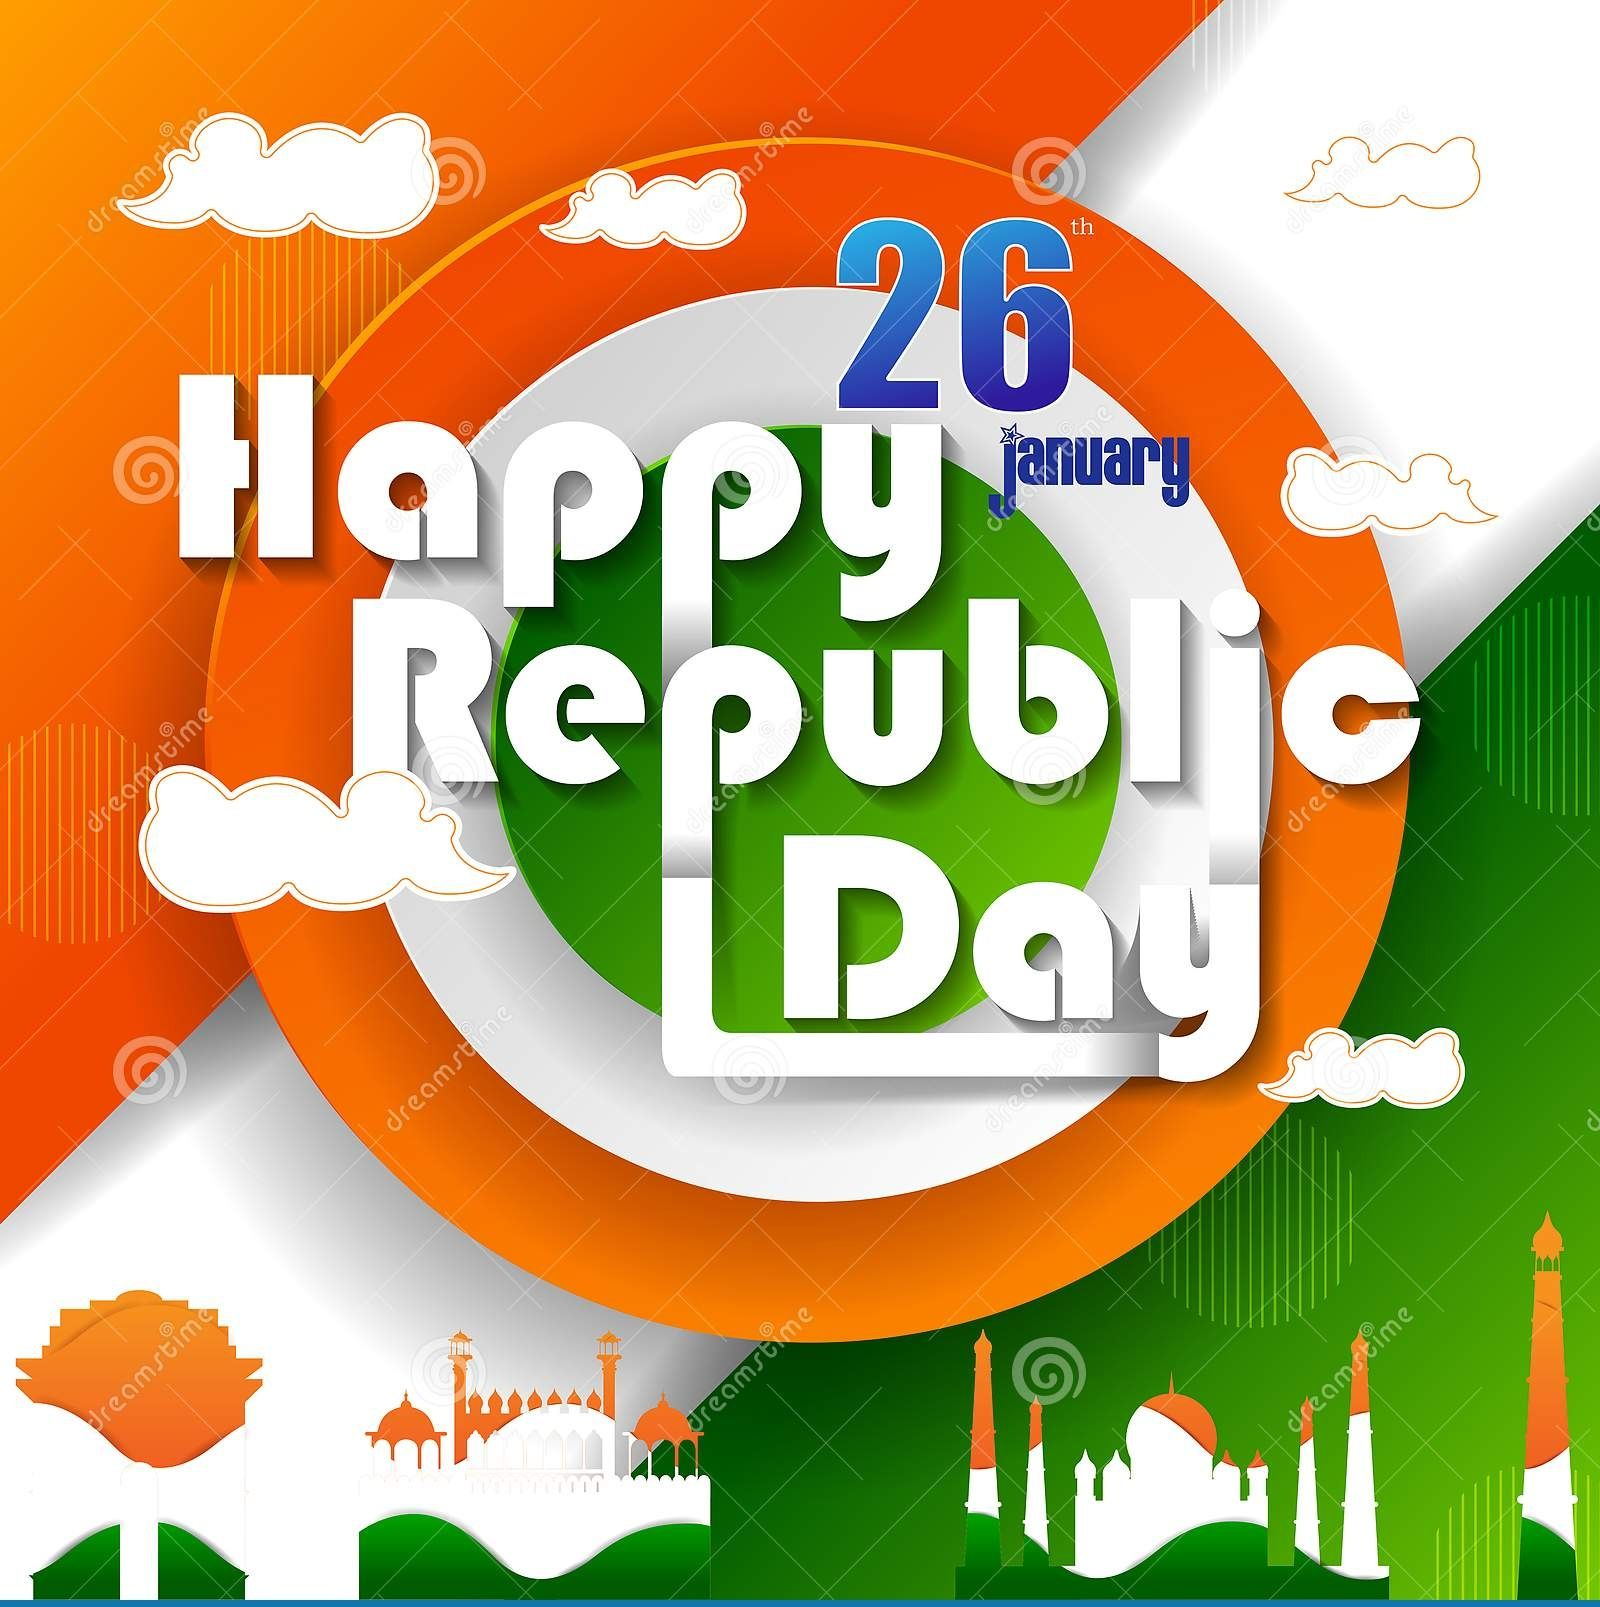 Happy Republic Day 2021 Images Gifs Wallpapers 26 January Wishes Hd Shayari Status In 2021 Republic Day Republic Day Status Happy